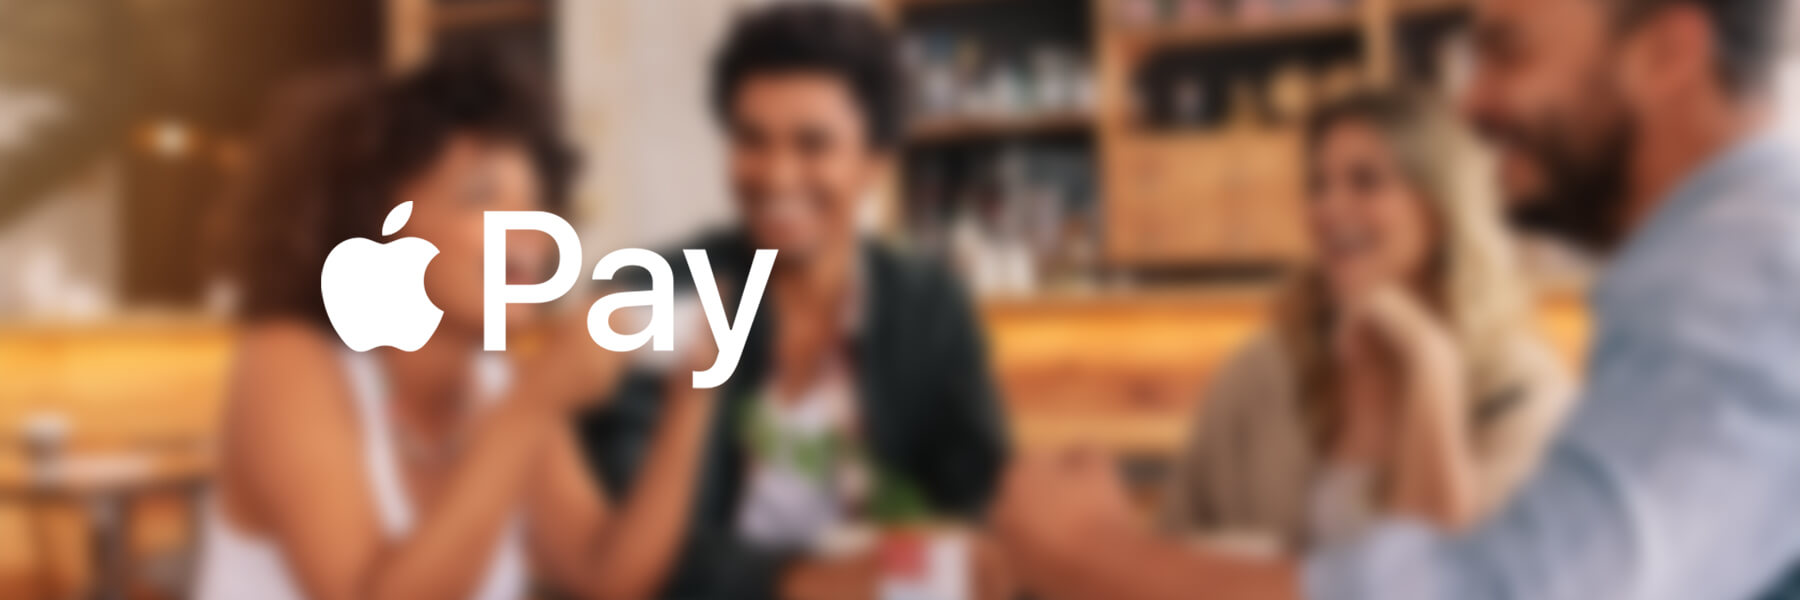 White Apple Pay logo on top of a blurred image of friends laughing together in a coffee shop.